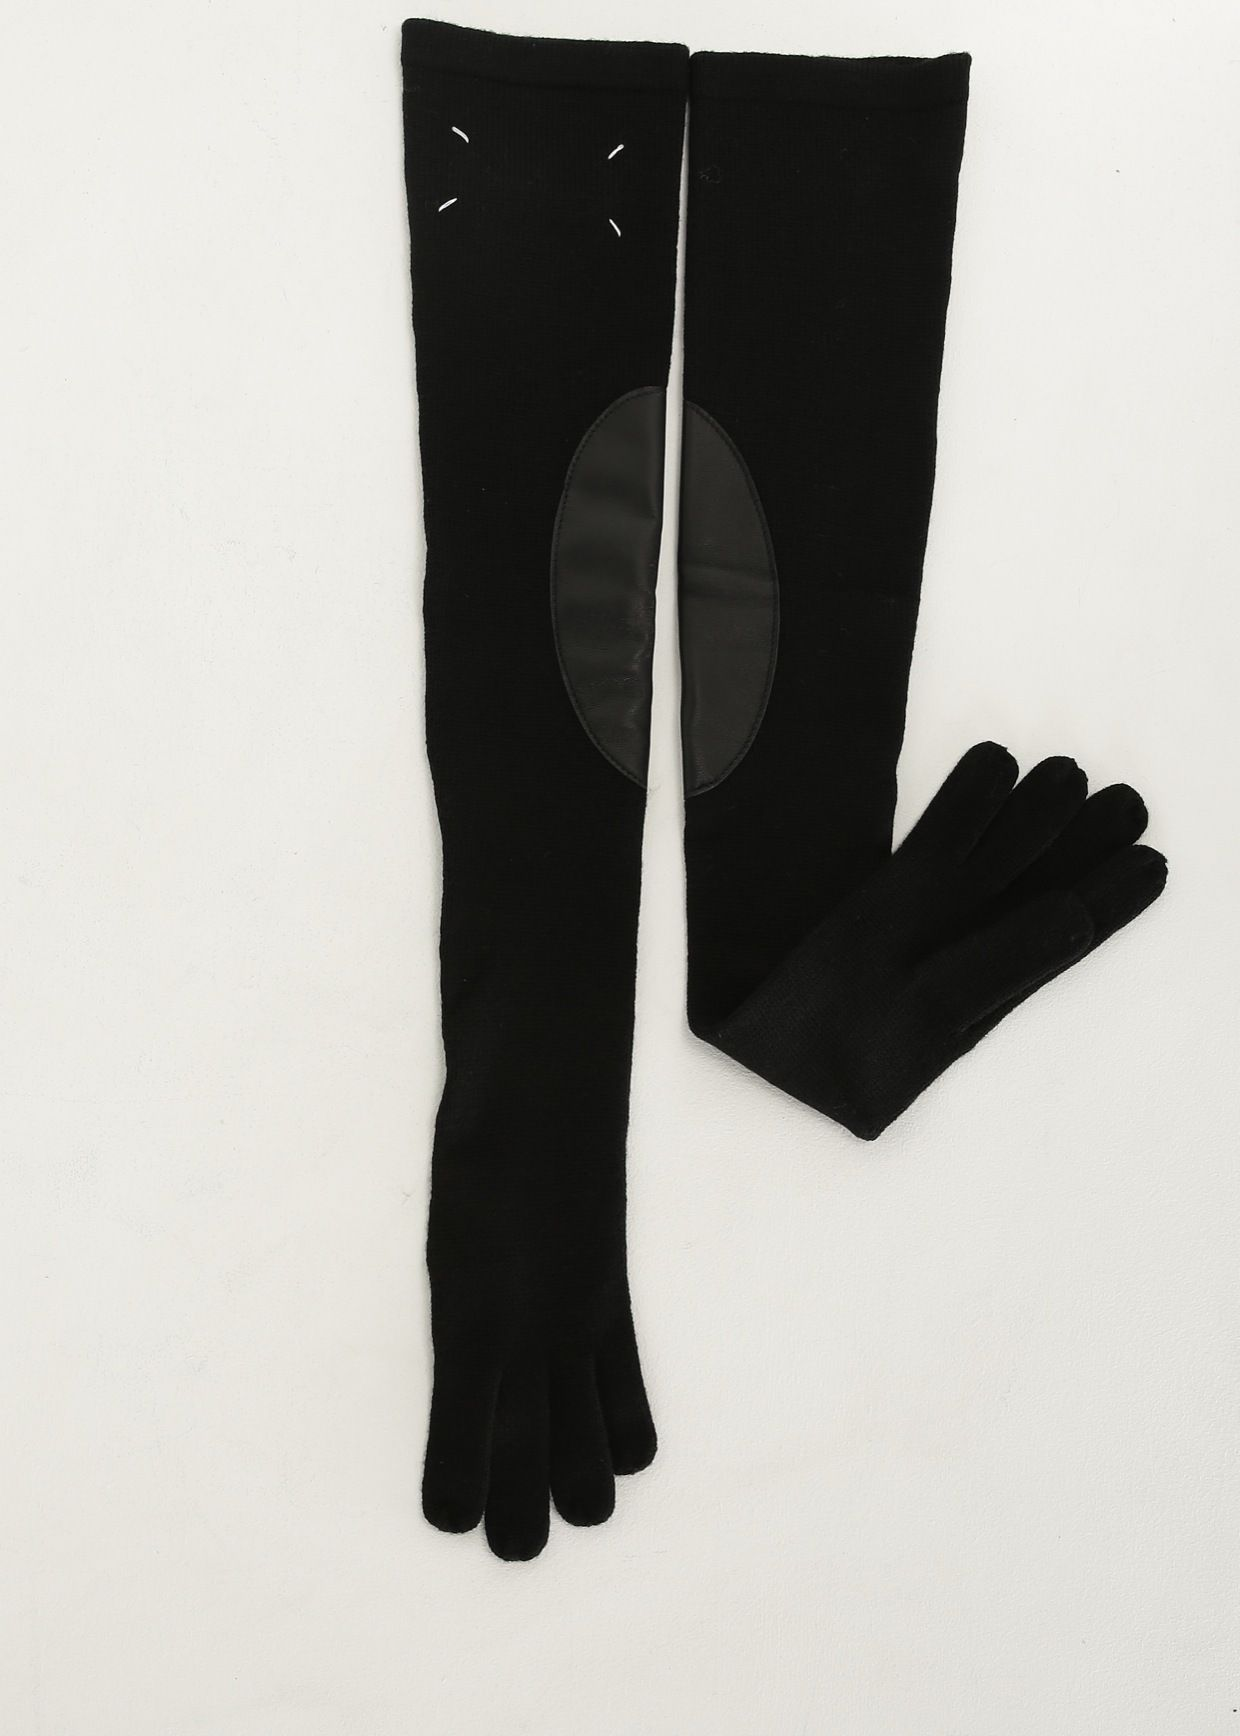 Maison margiela black long gloves stuffstuffstuff pinterest